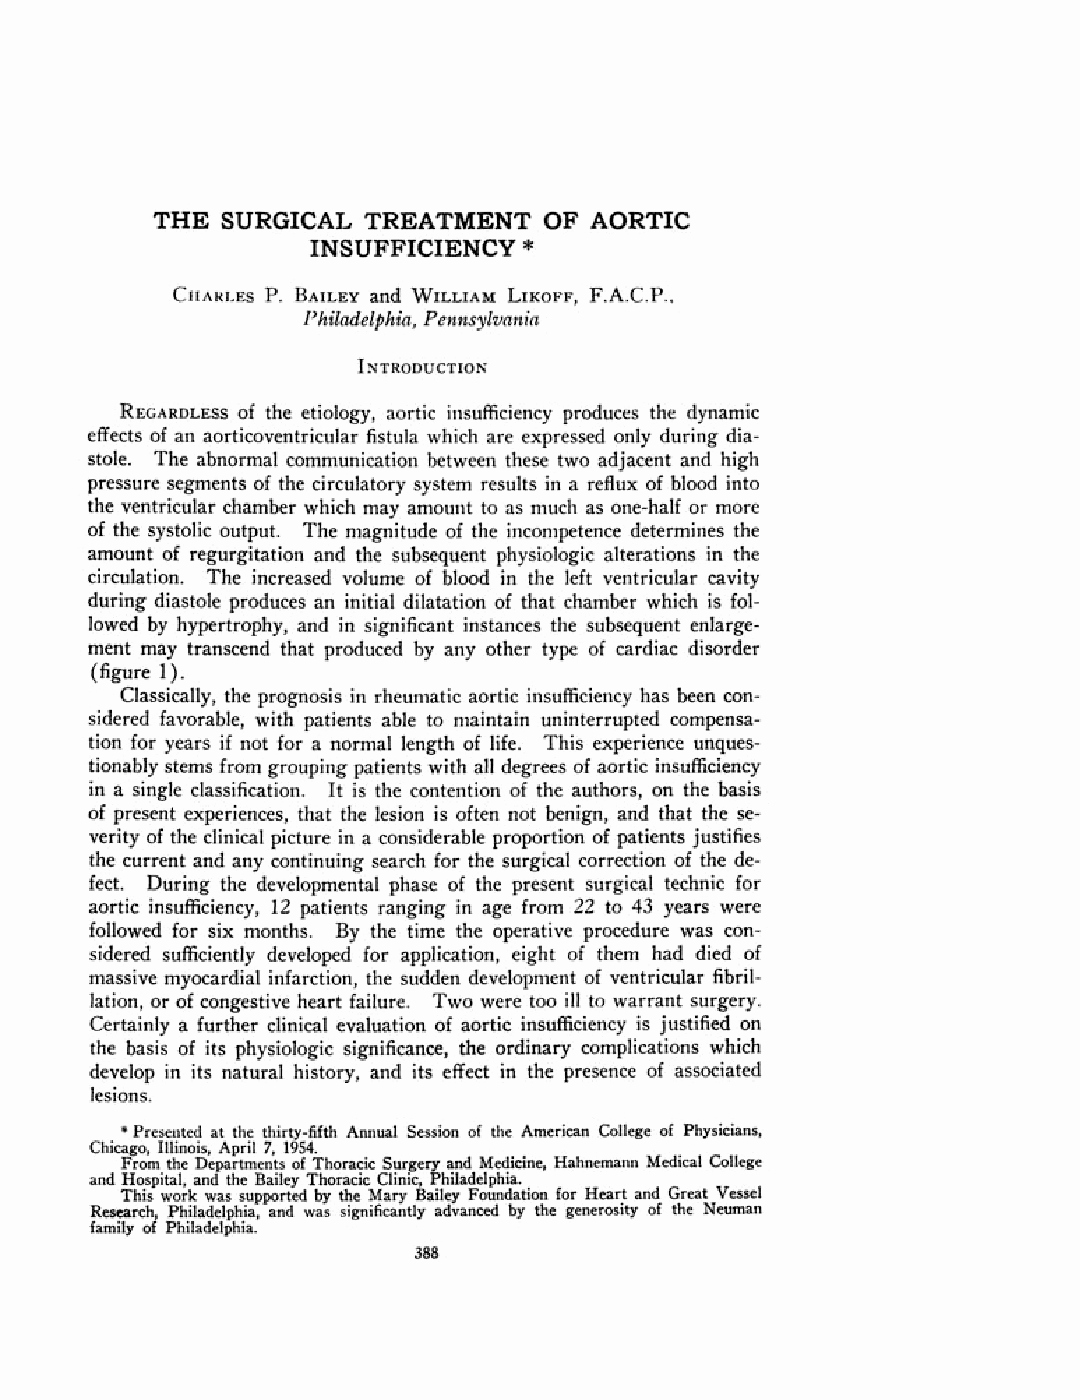 Sample Letter Of Incompetence From Doctor Beautiful the Surgical Treatment Of Aortic Insufficiency